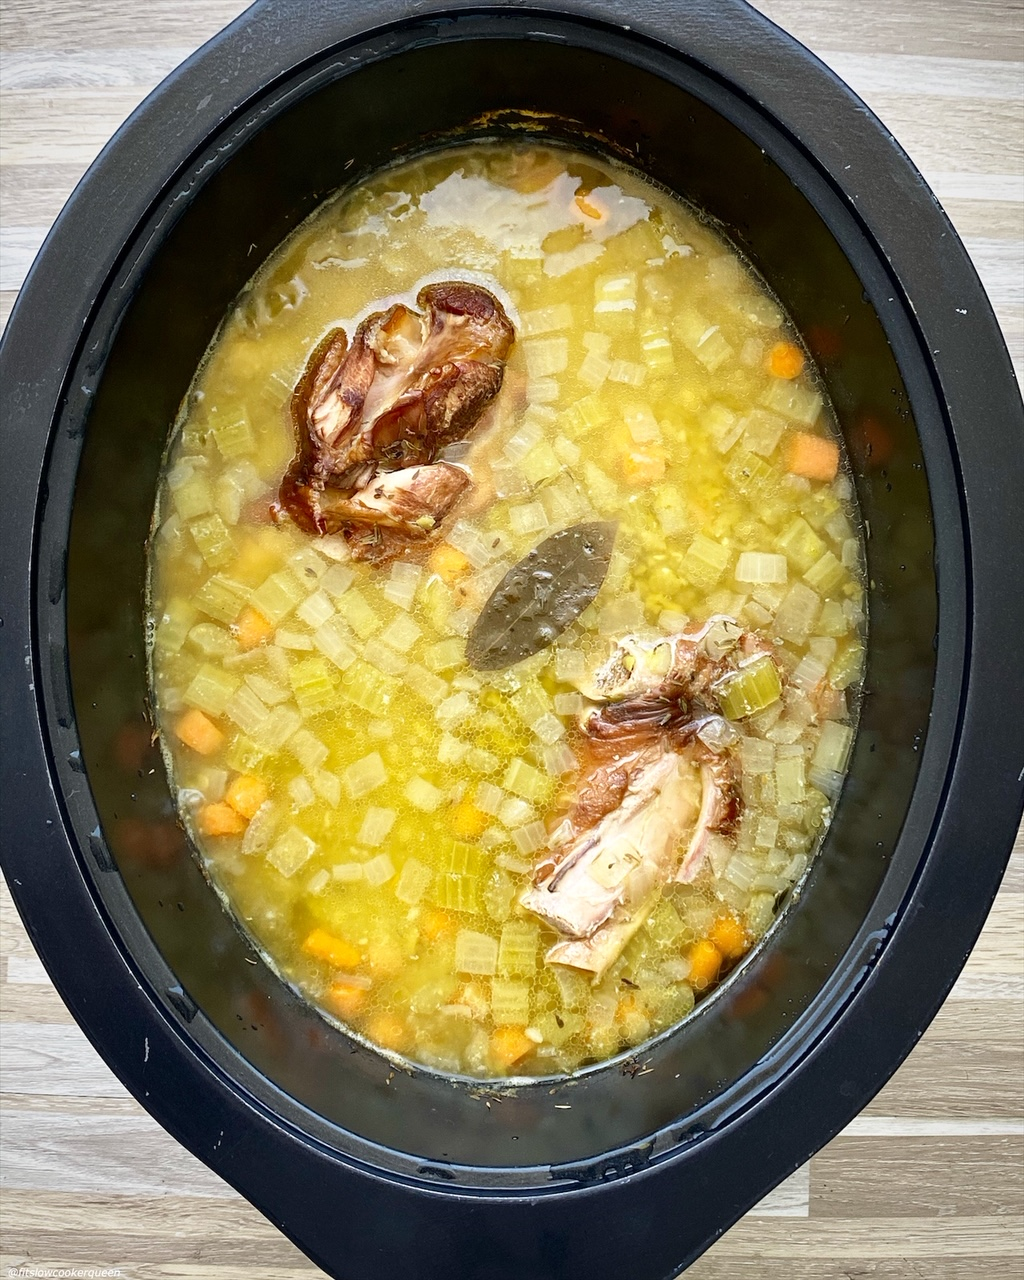 after pic of {VIDEO} Slow CookerInstant Pot Split Pea Soup (Whole30) in the slow cooker